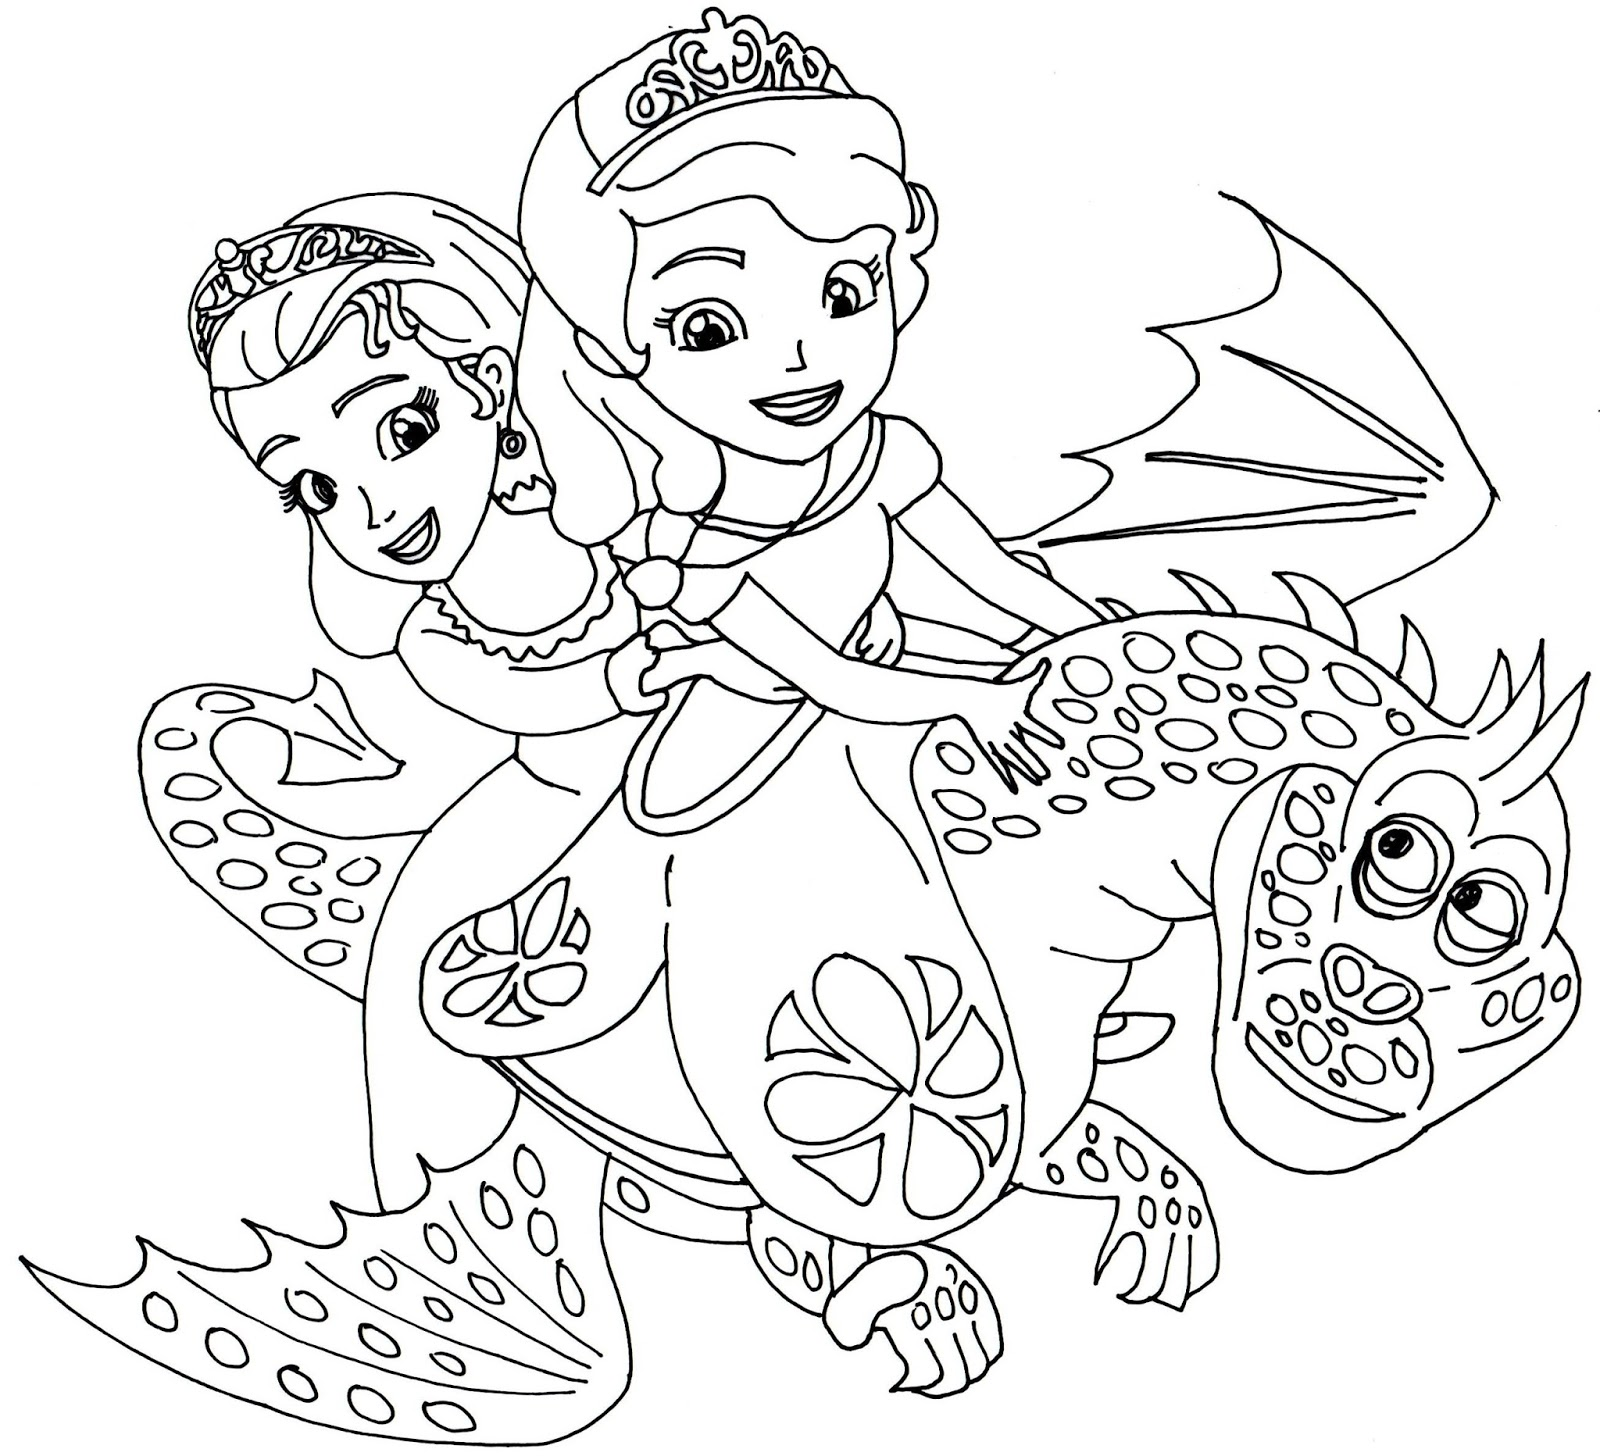 sofia the first coloring pages pdf - top 10 disney princess sofia the first the curse of